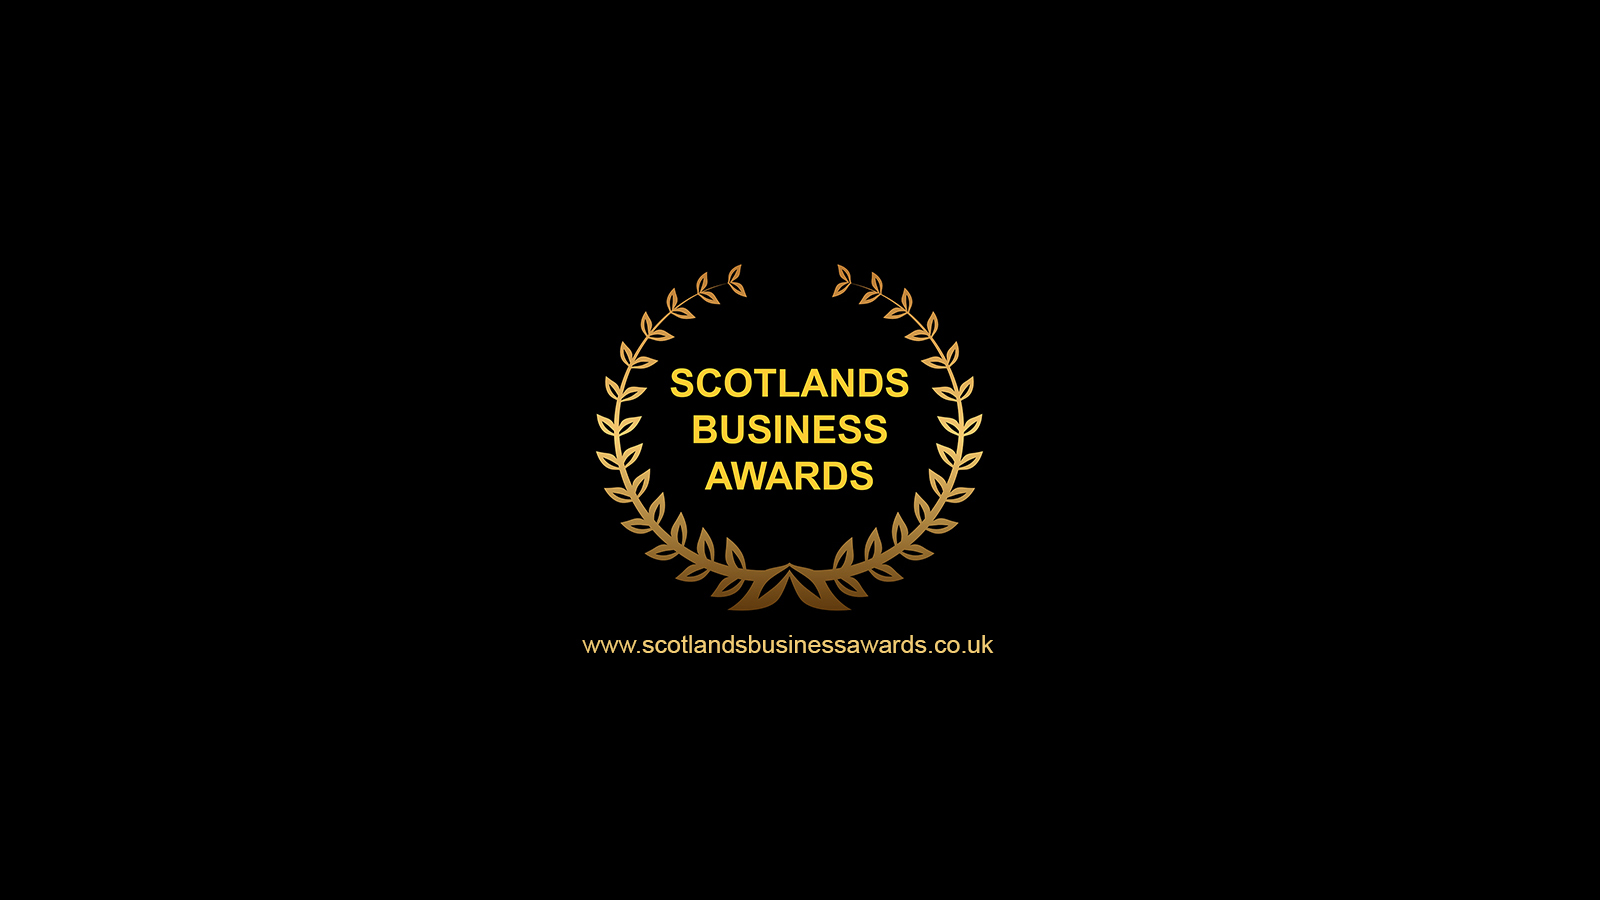 scotlands business awards